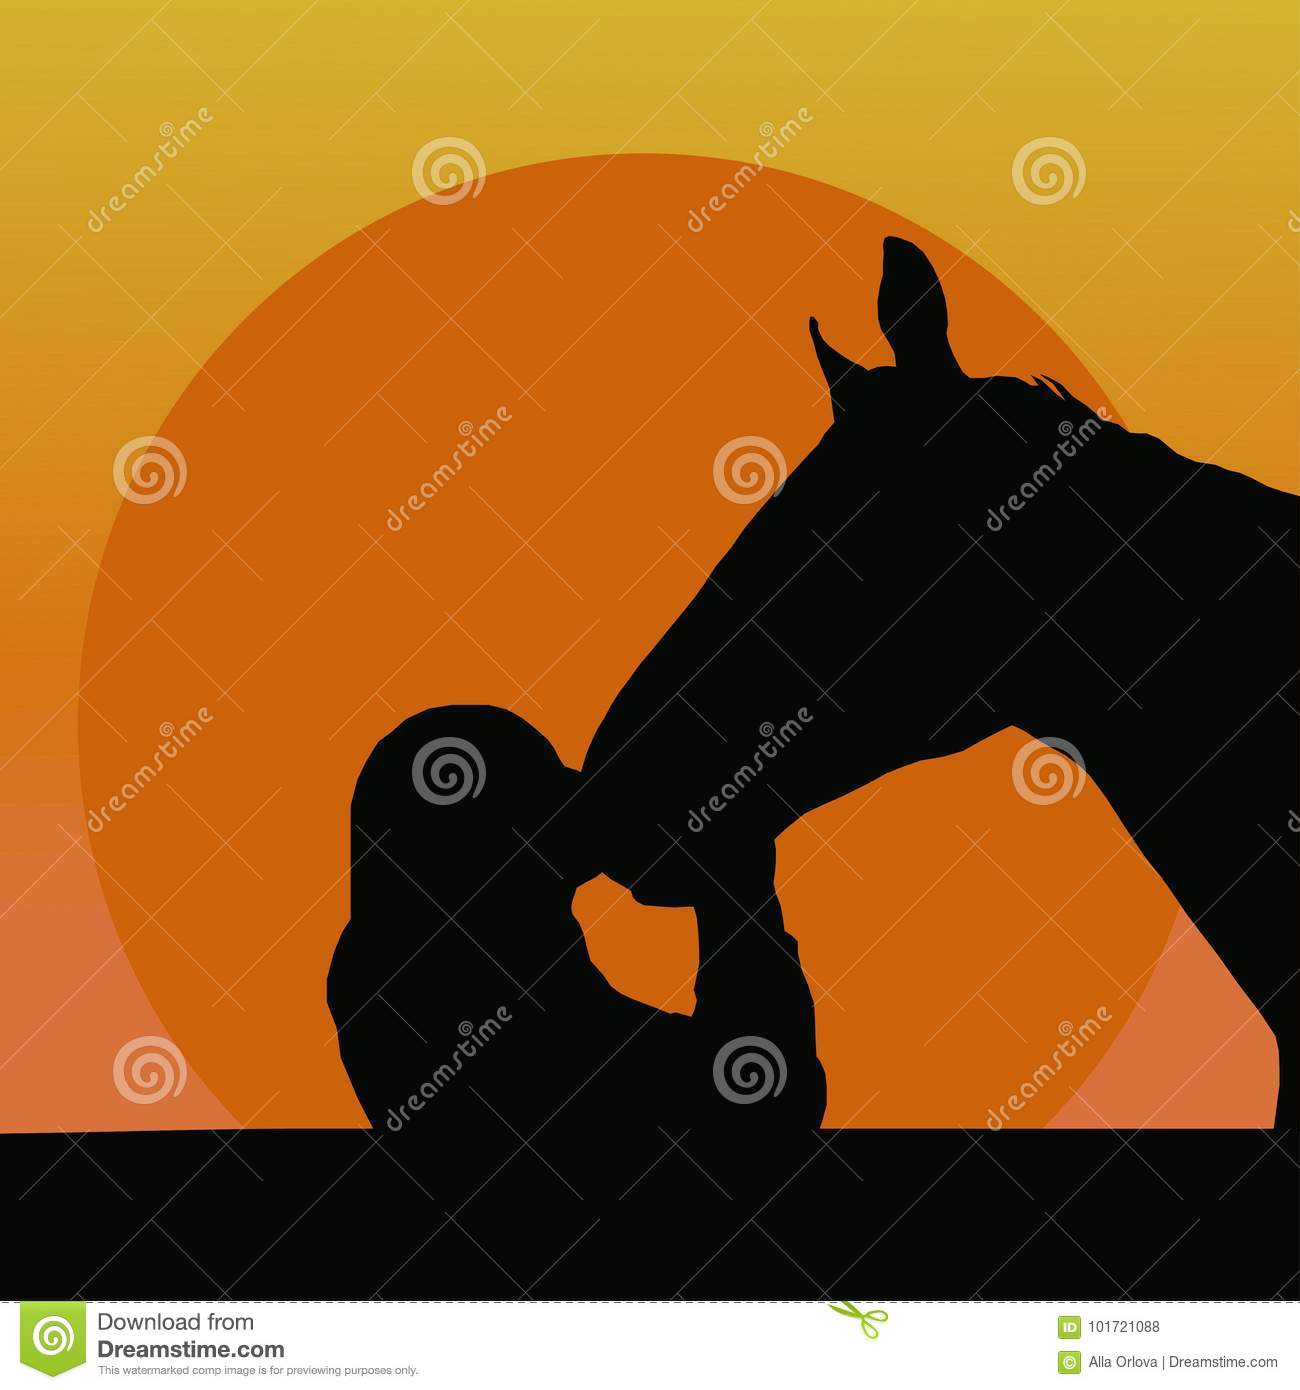 Silhouettes of a girl kissing a horse